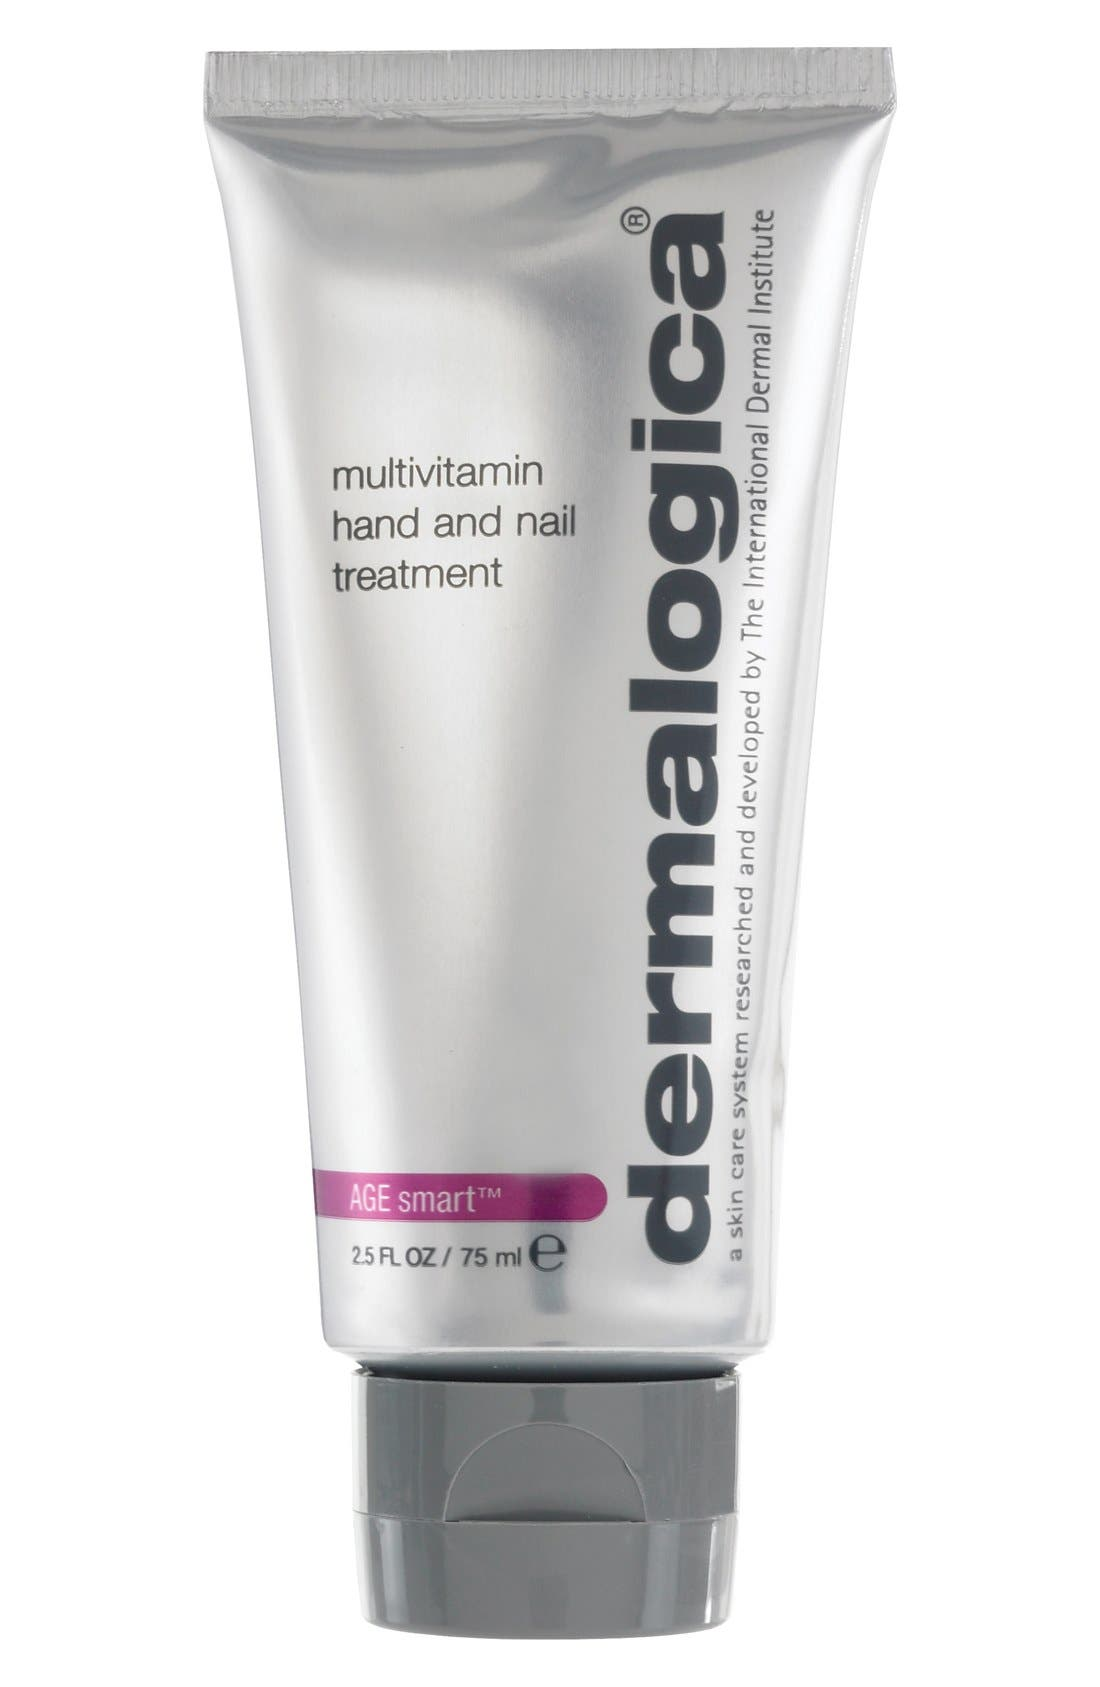 dermalogica® Multivitamin Hand & Nail Treatment